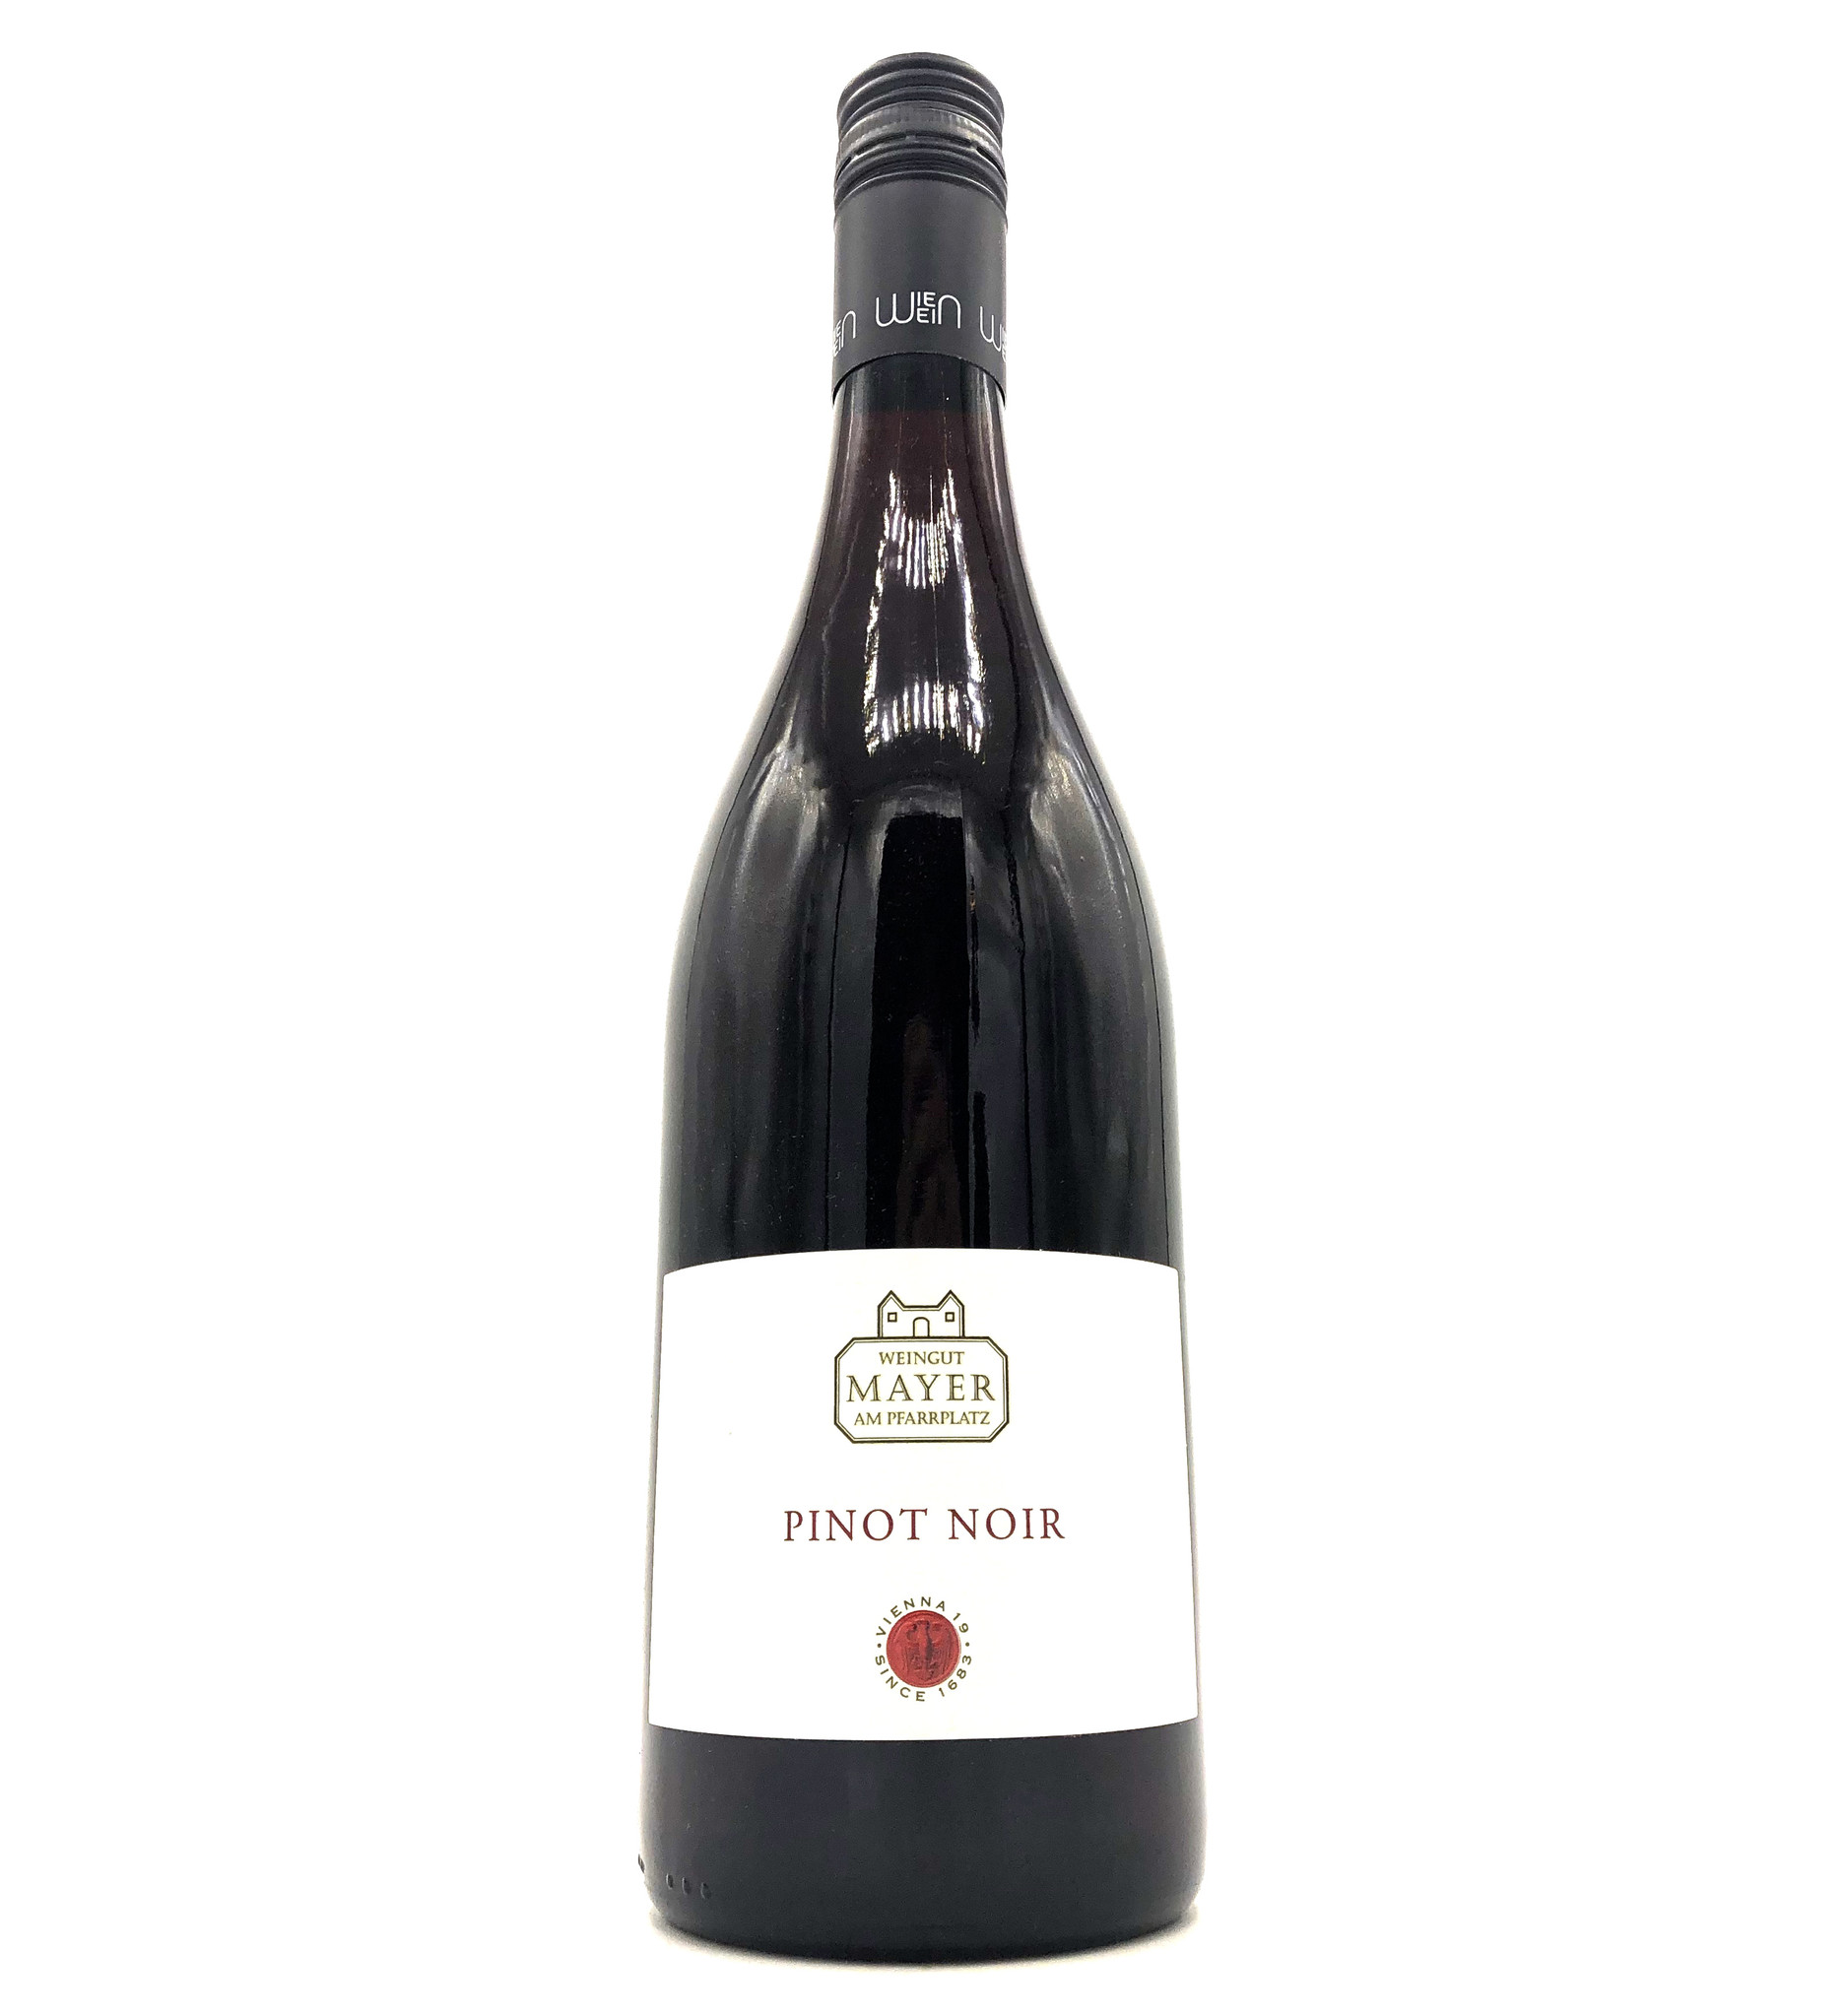 Pinot Noir 2017 Mayer am Pfarrplatz